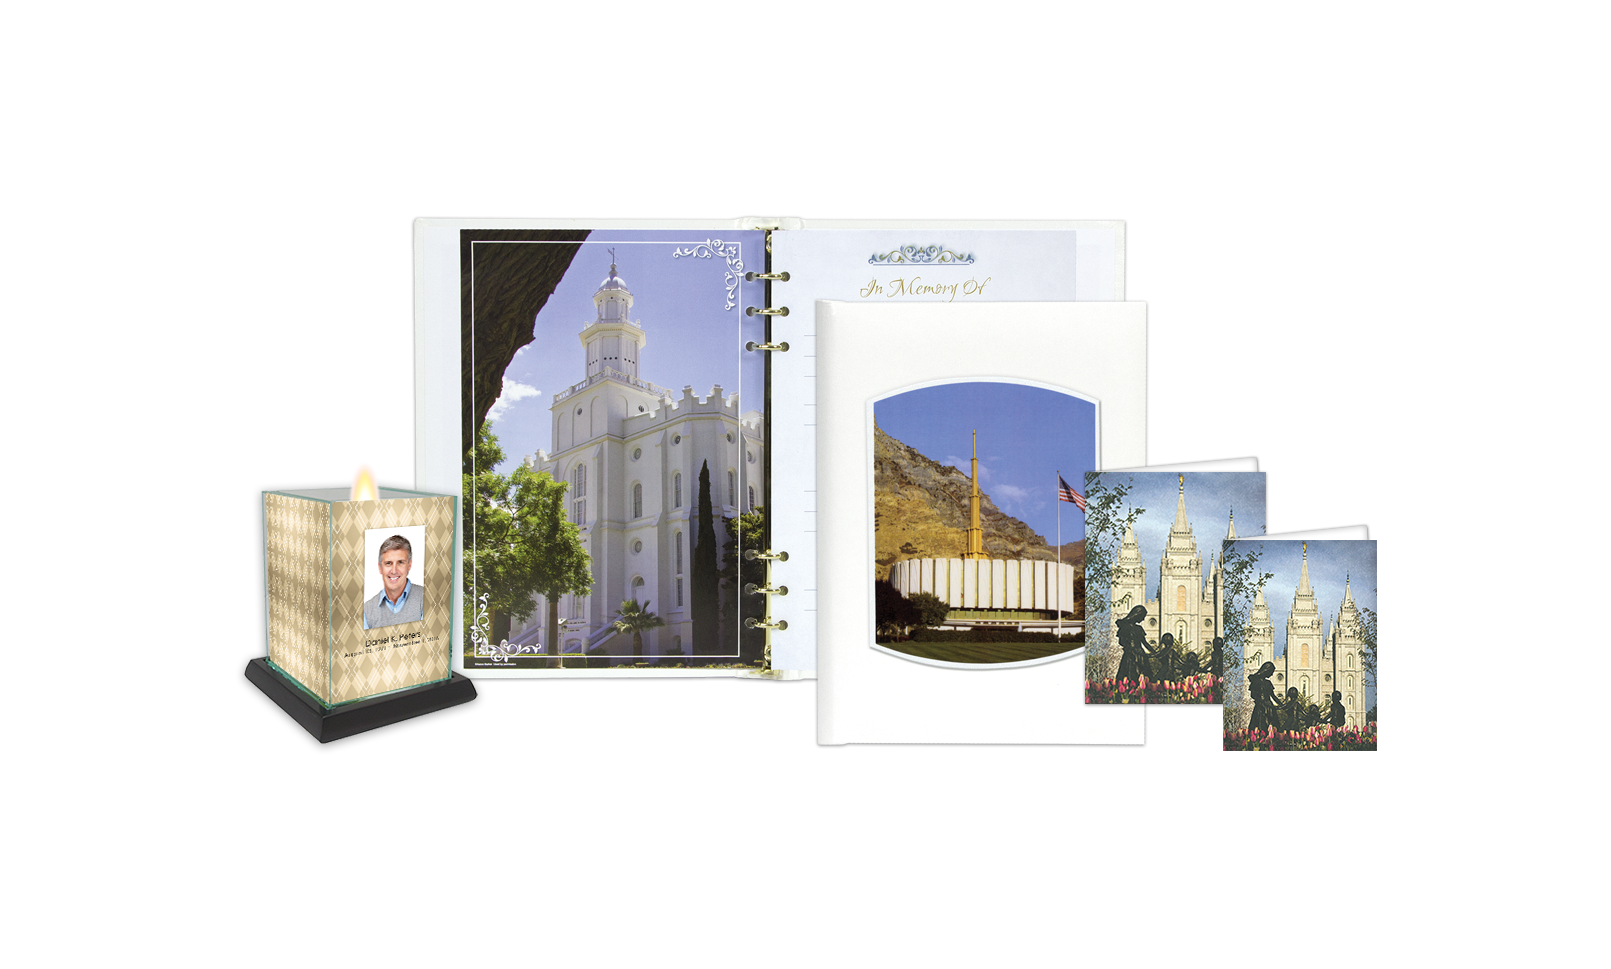 ROL Latter Day Saints Provo Temple Series 293 LDS